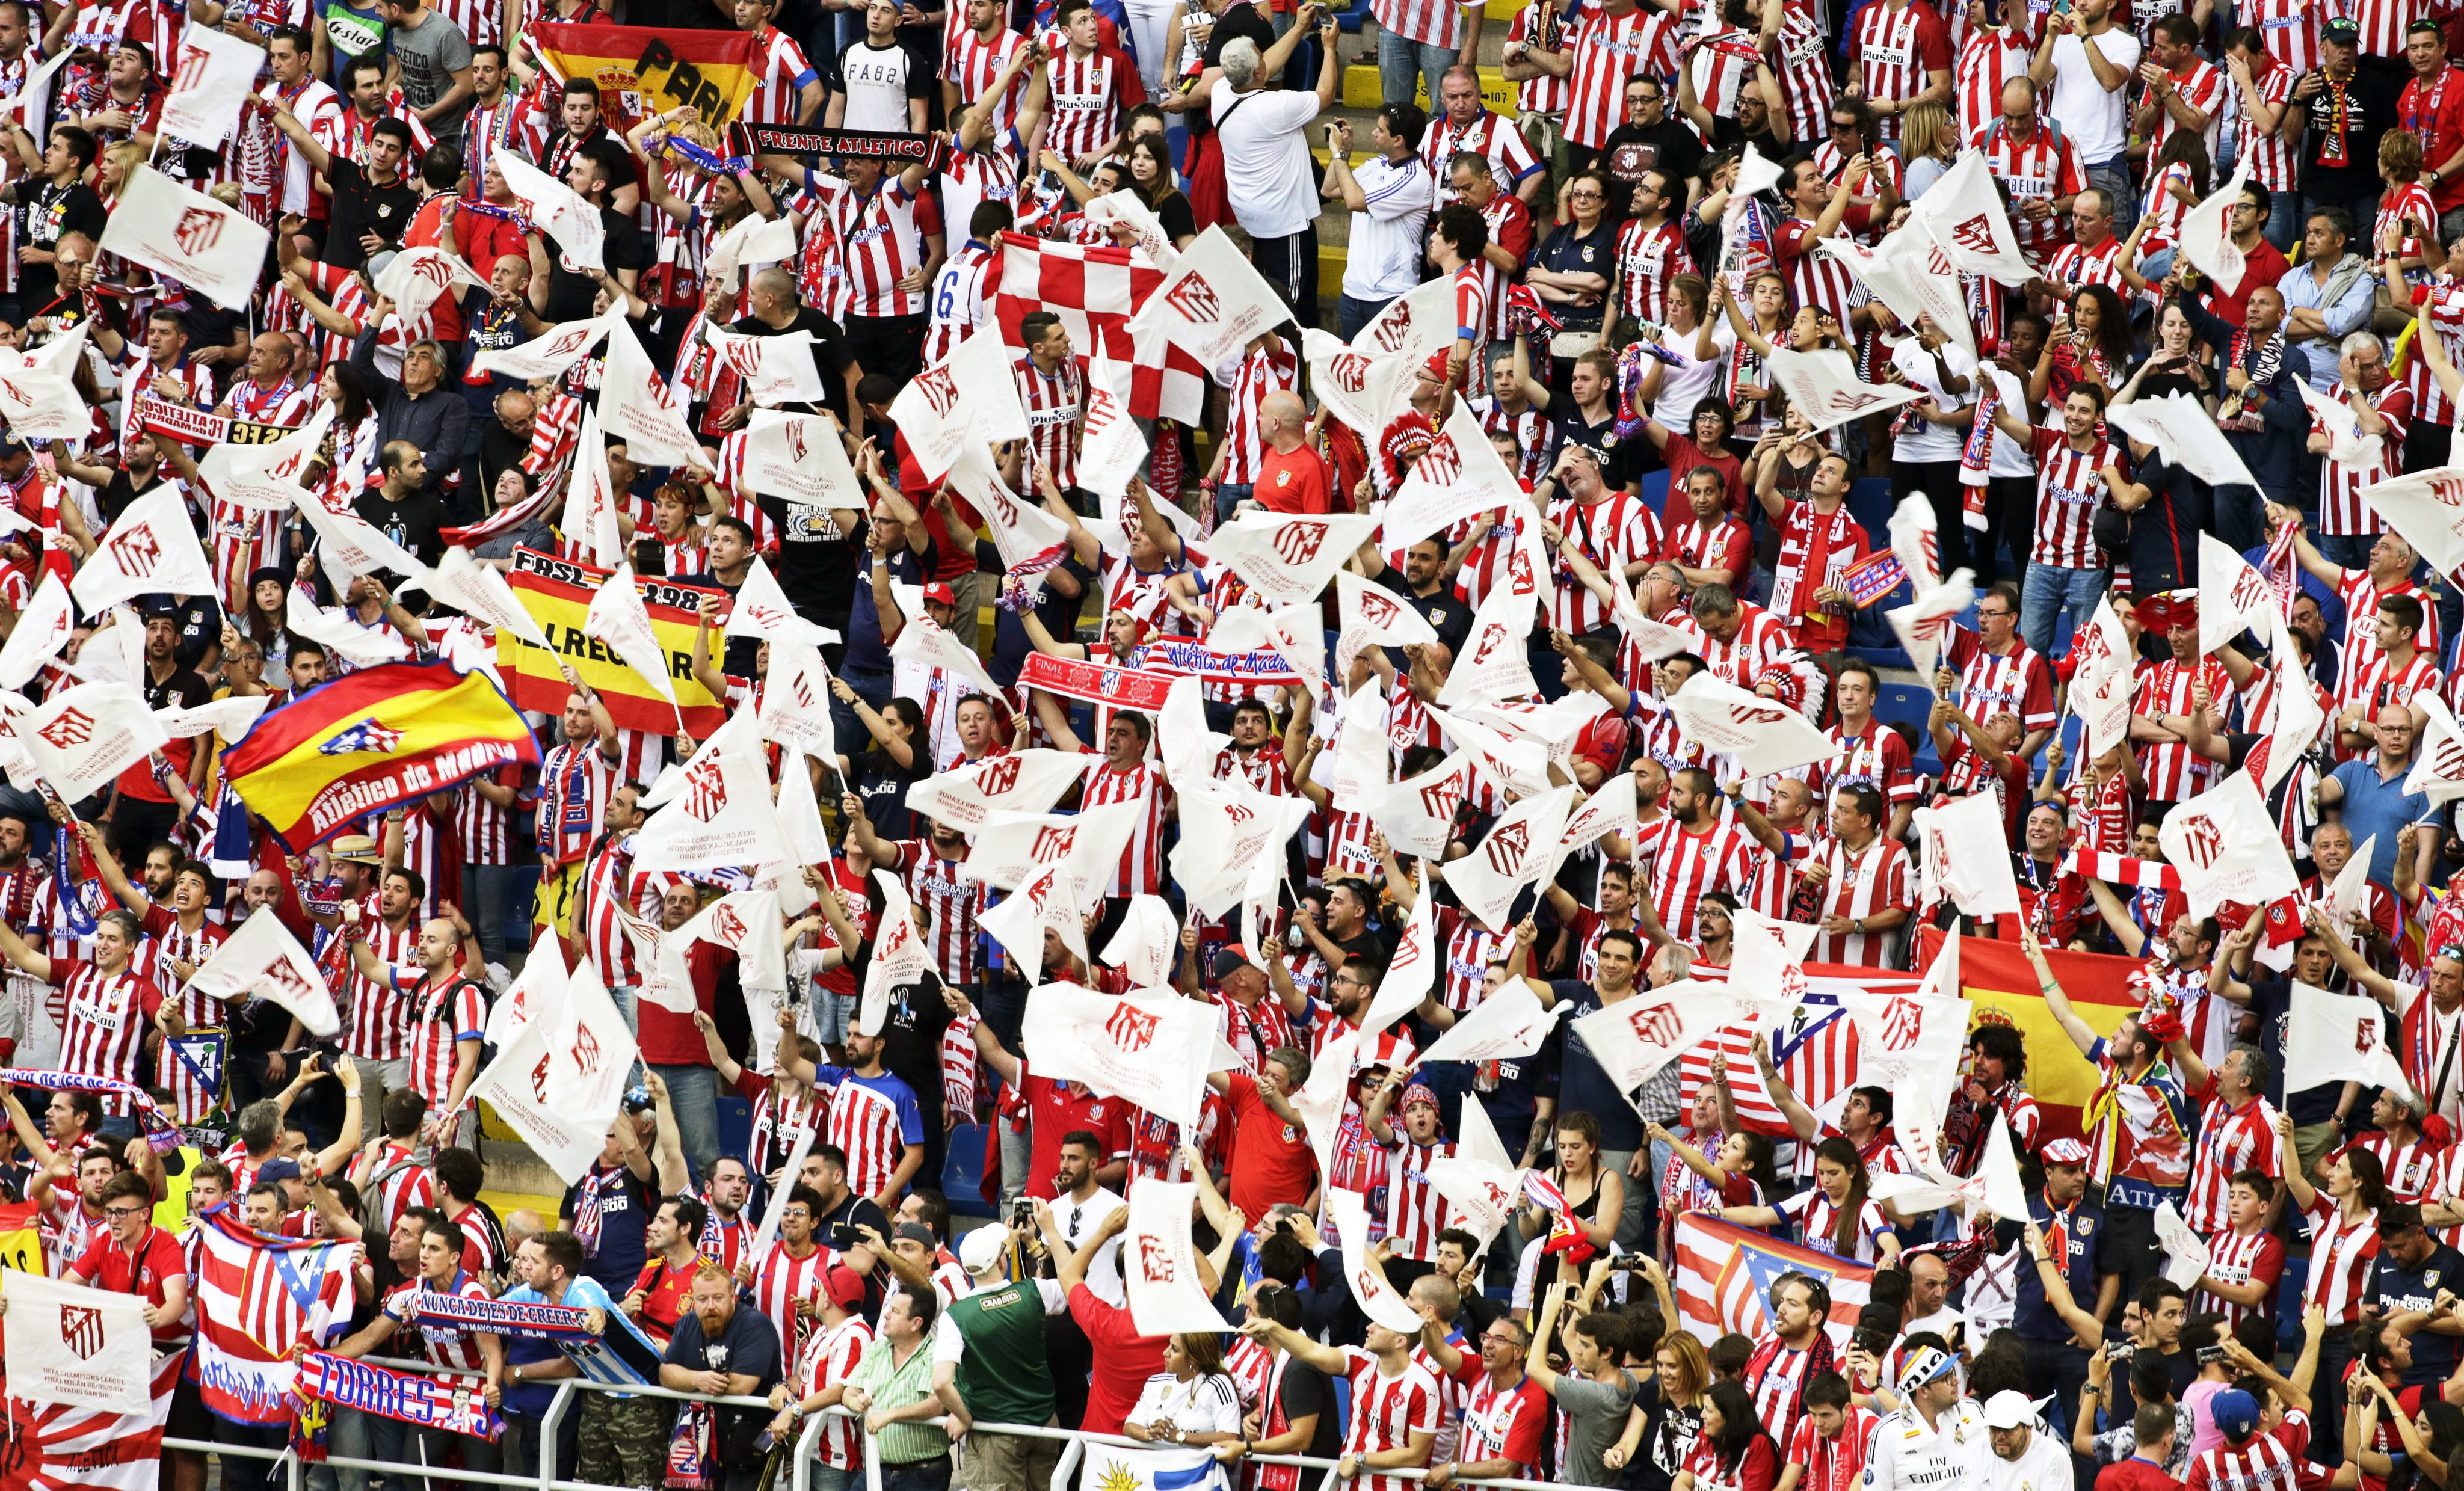 . Milan (Italy), 28/05/2016.- Atletico Madrid supporters cheer for their team before the UEFA Champions League final between Real Madrid and Atletico Madrid at the Giuseppe Meazza Stadium in Milan, Italy, 28 May 2016. (Liga de Campeones, Italia) EFE/EPA/ARMANDO BABANI